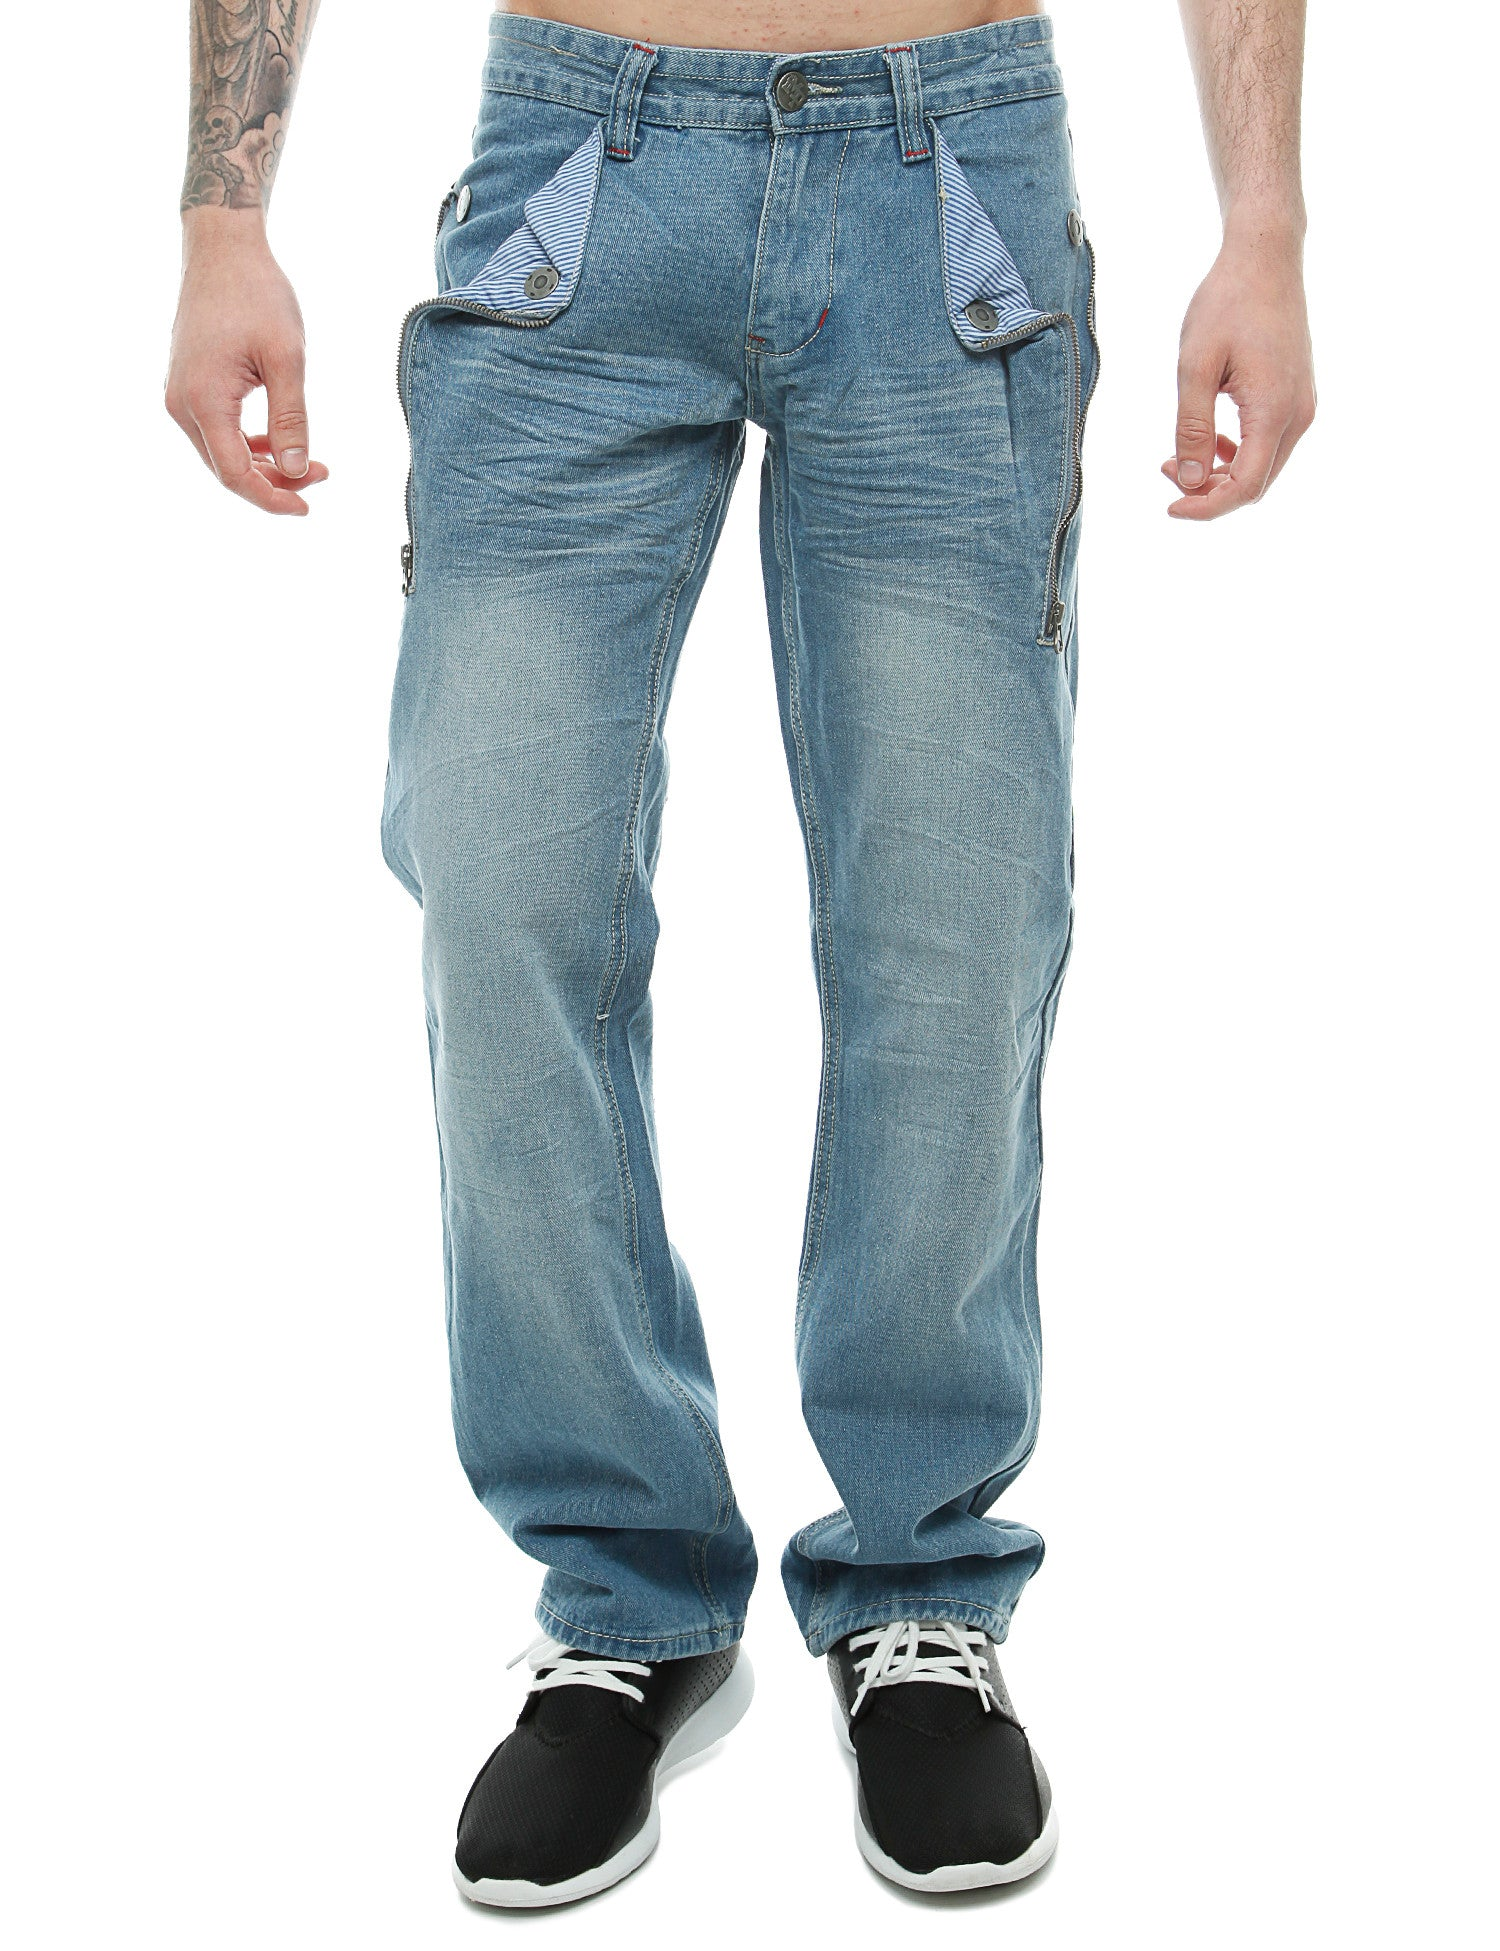 Imperious Flap Pocket Washed Denim Jeans Lt. Blue